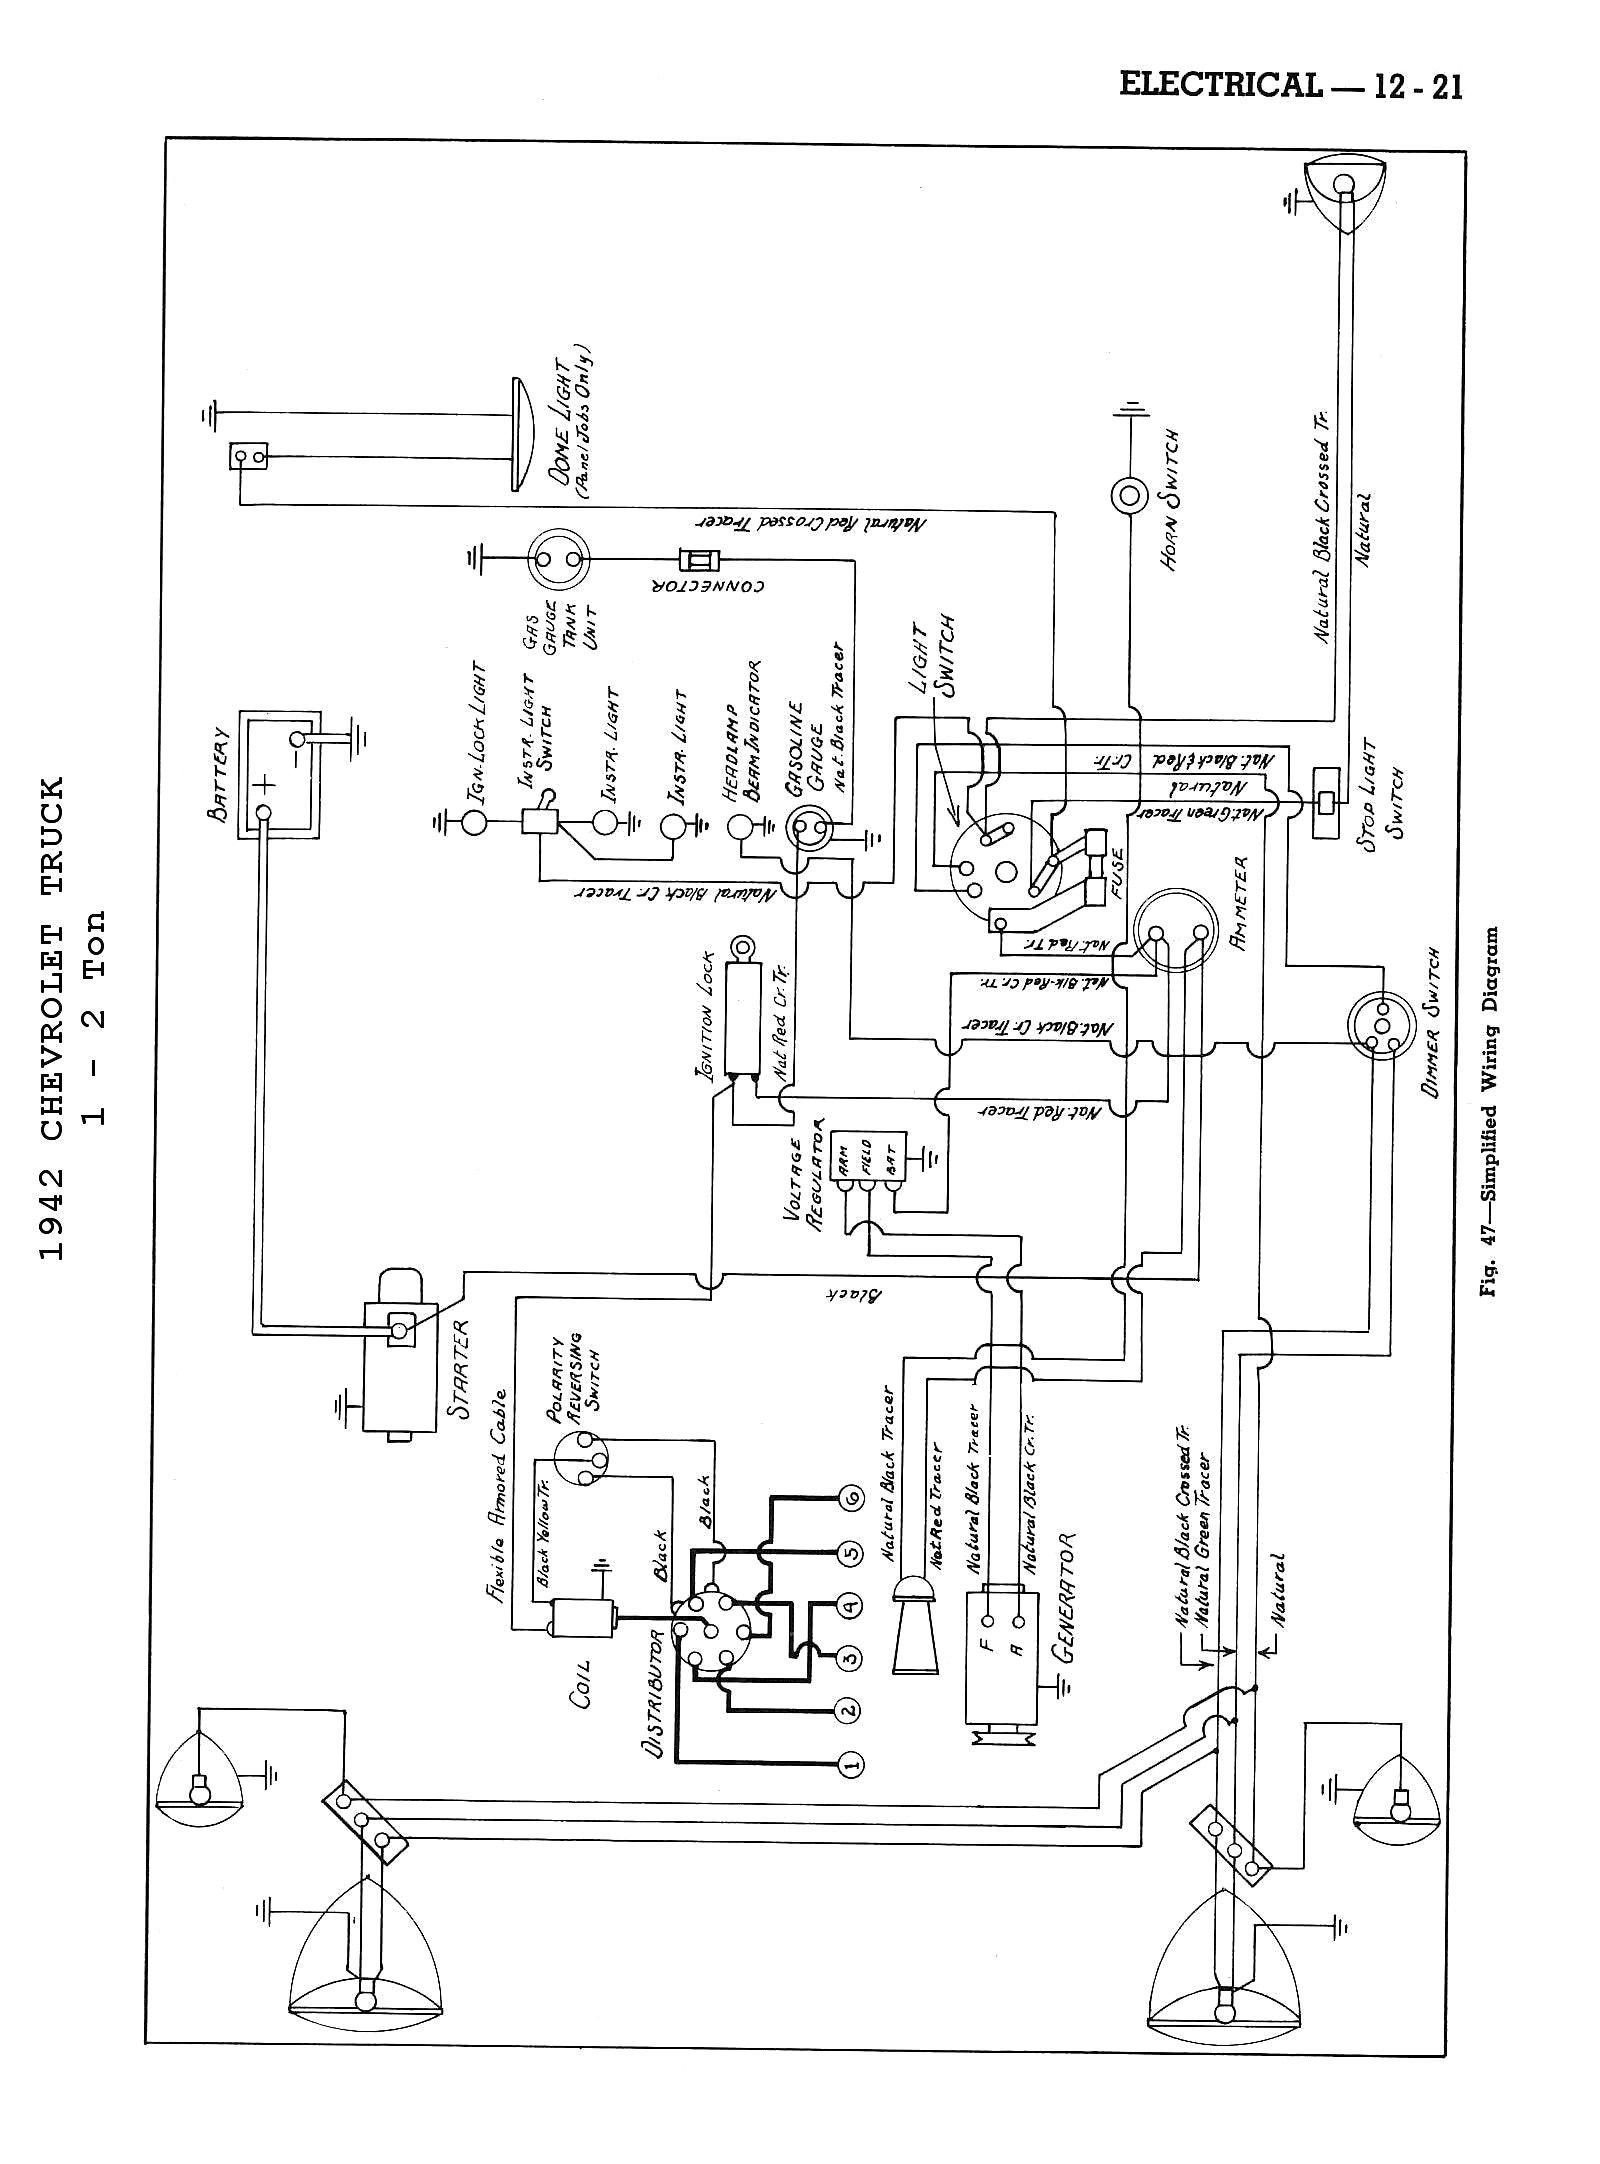 Suburban Water Heater Wiring Diagram Denso Alternator Alternator Diagram